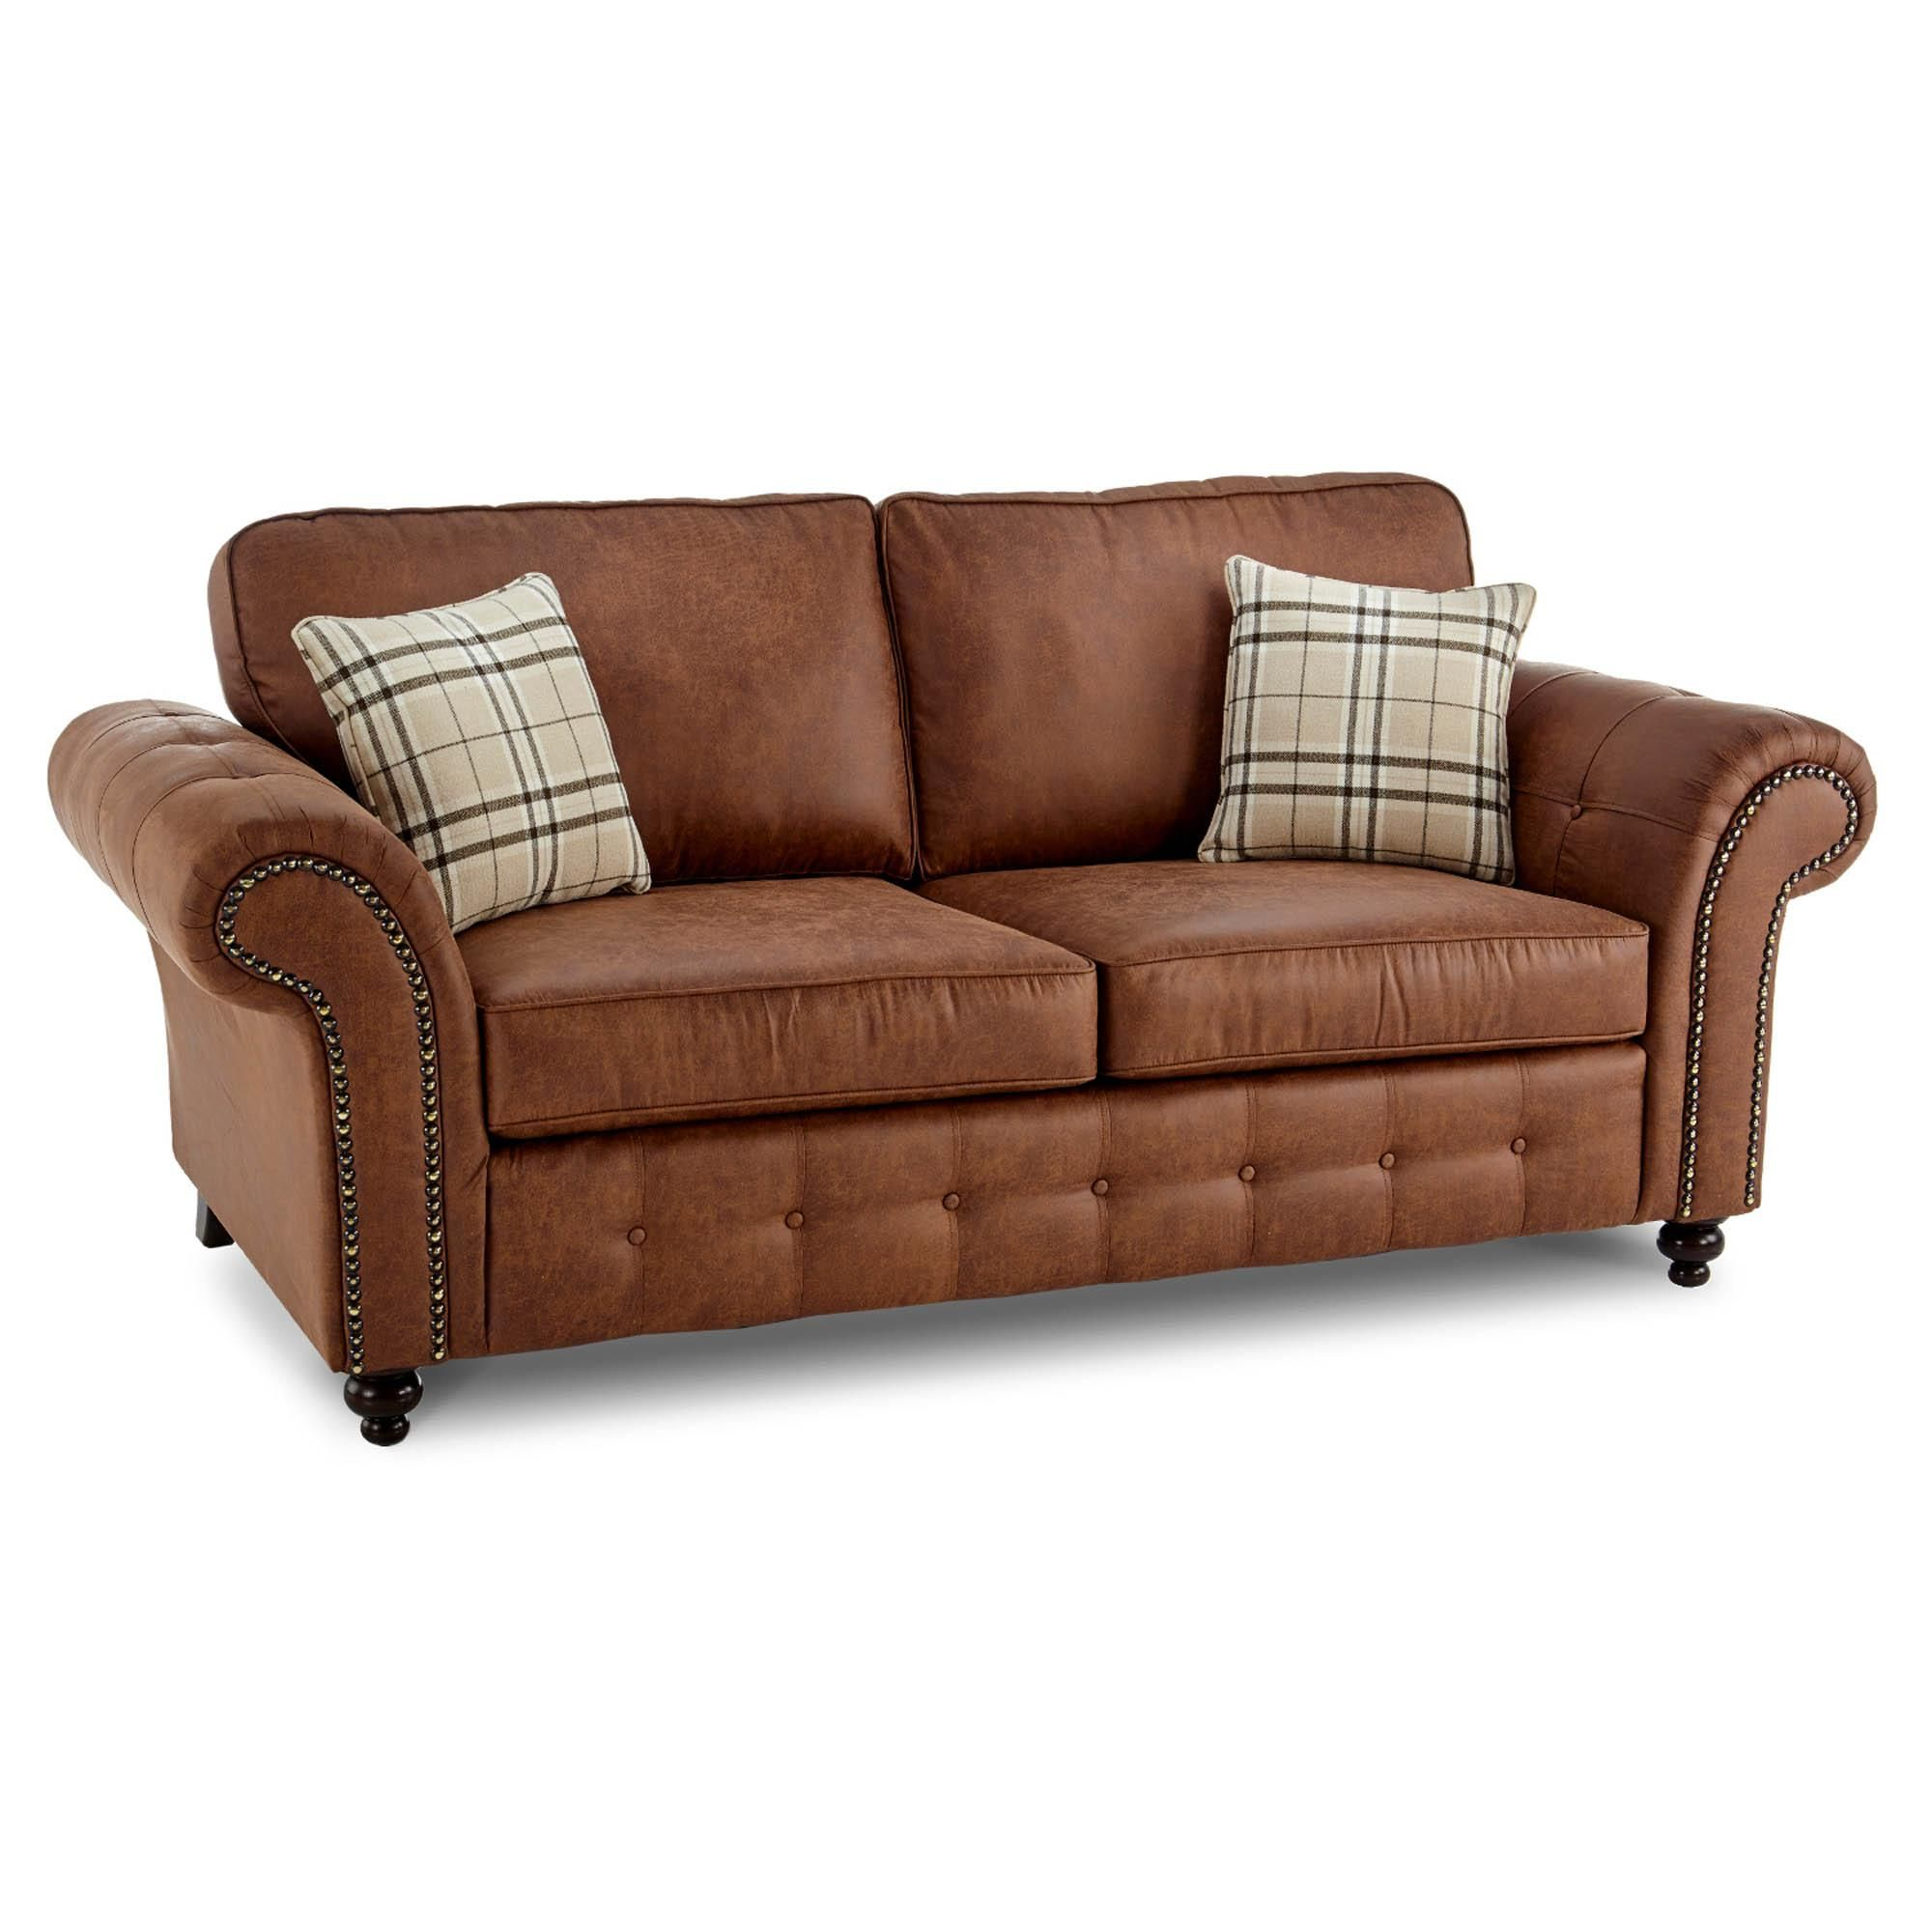 Dunelm Oakland Brown Faux Leather 3 Seater Sofa Best Leather Sofa Leather Sofa Retro Sofa